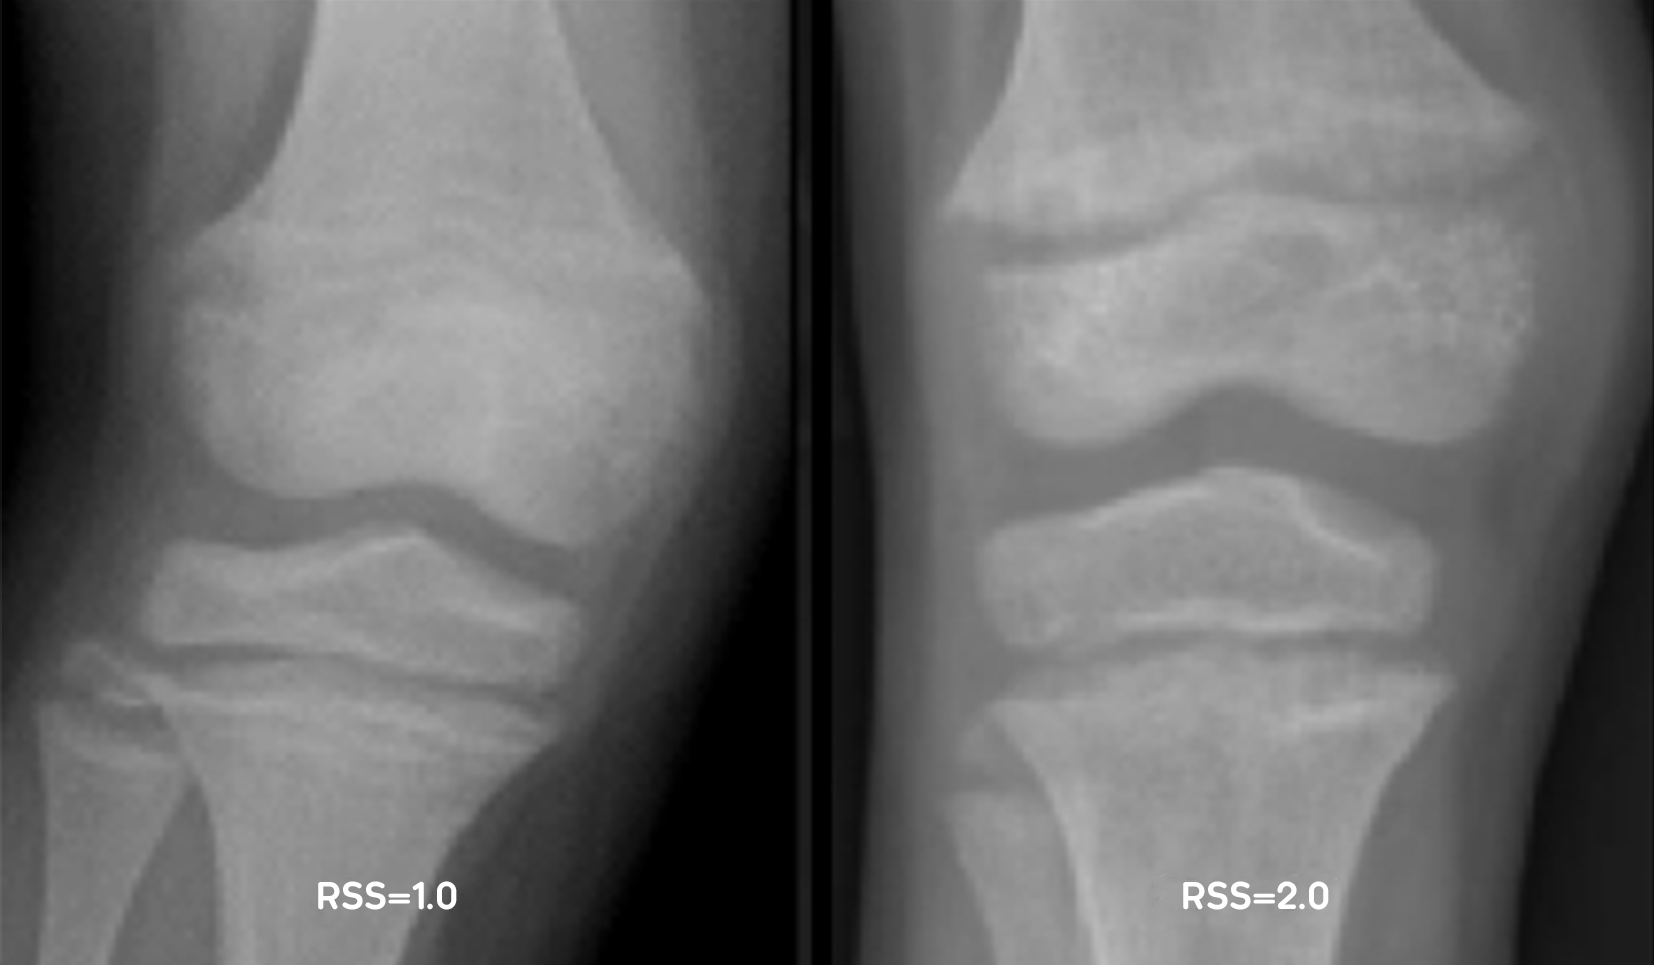 X-ray examples of RSS of 1.0 and RSS of 2.0